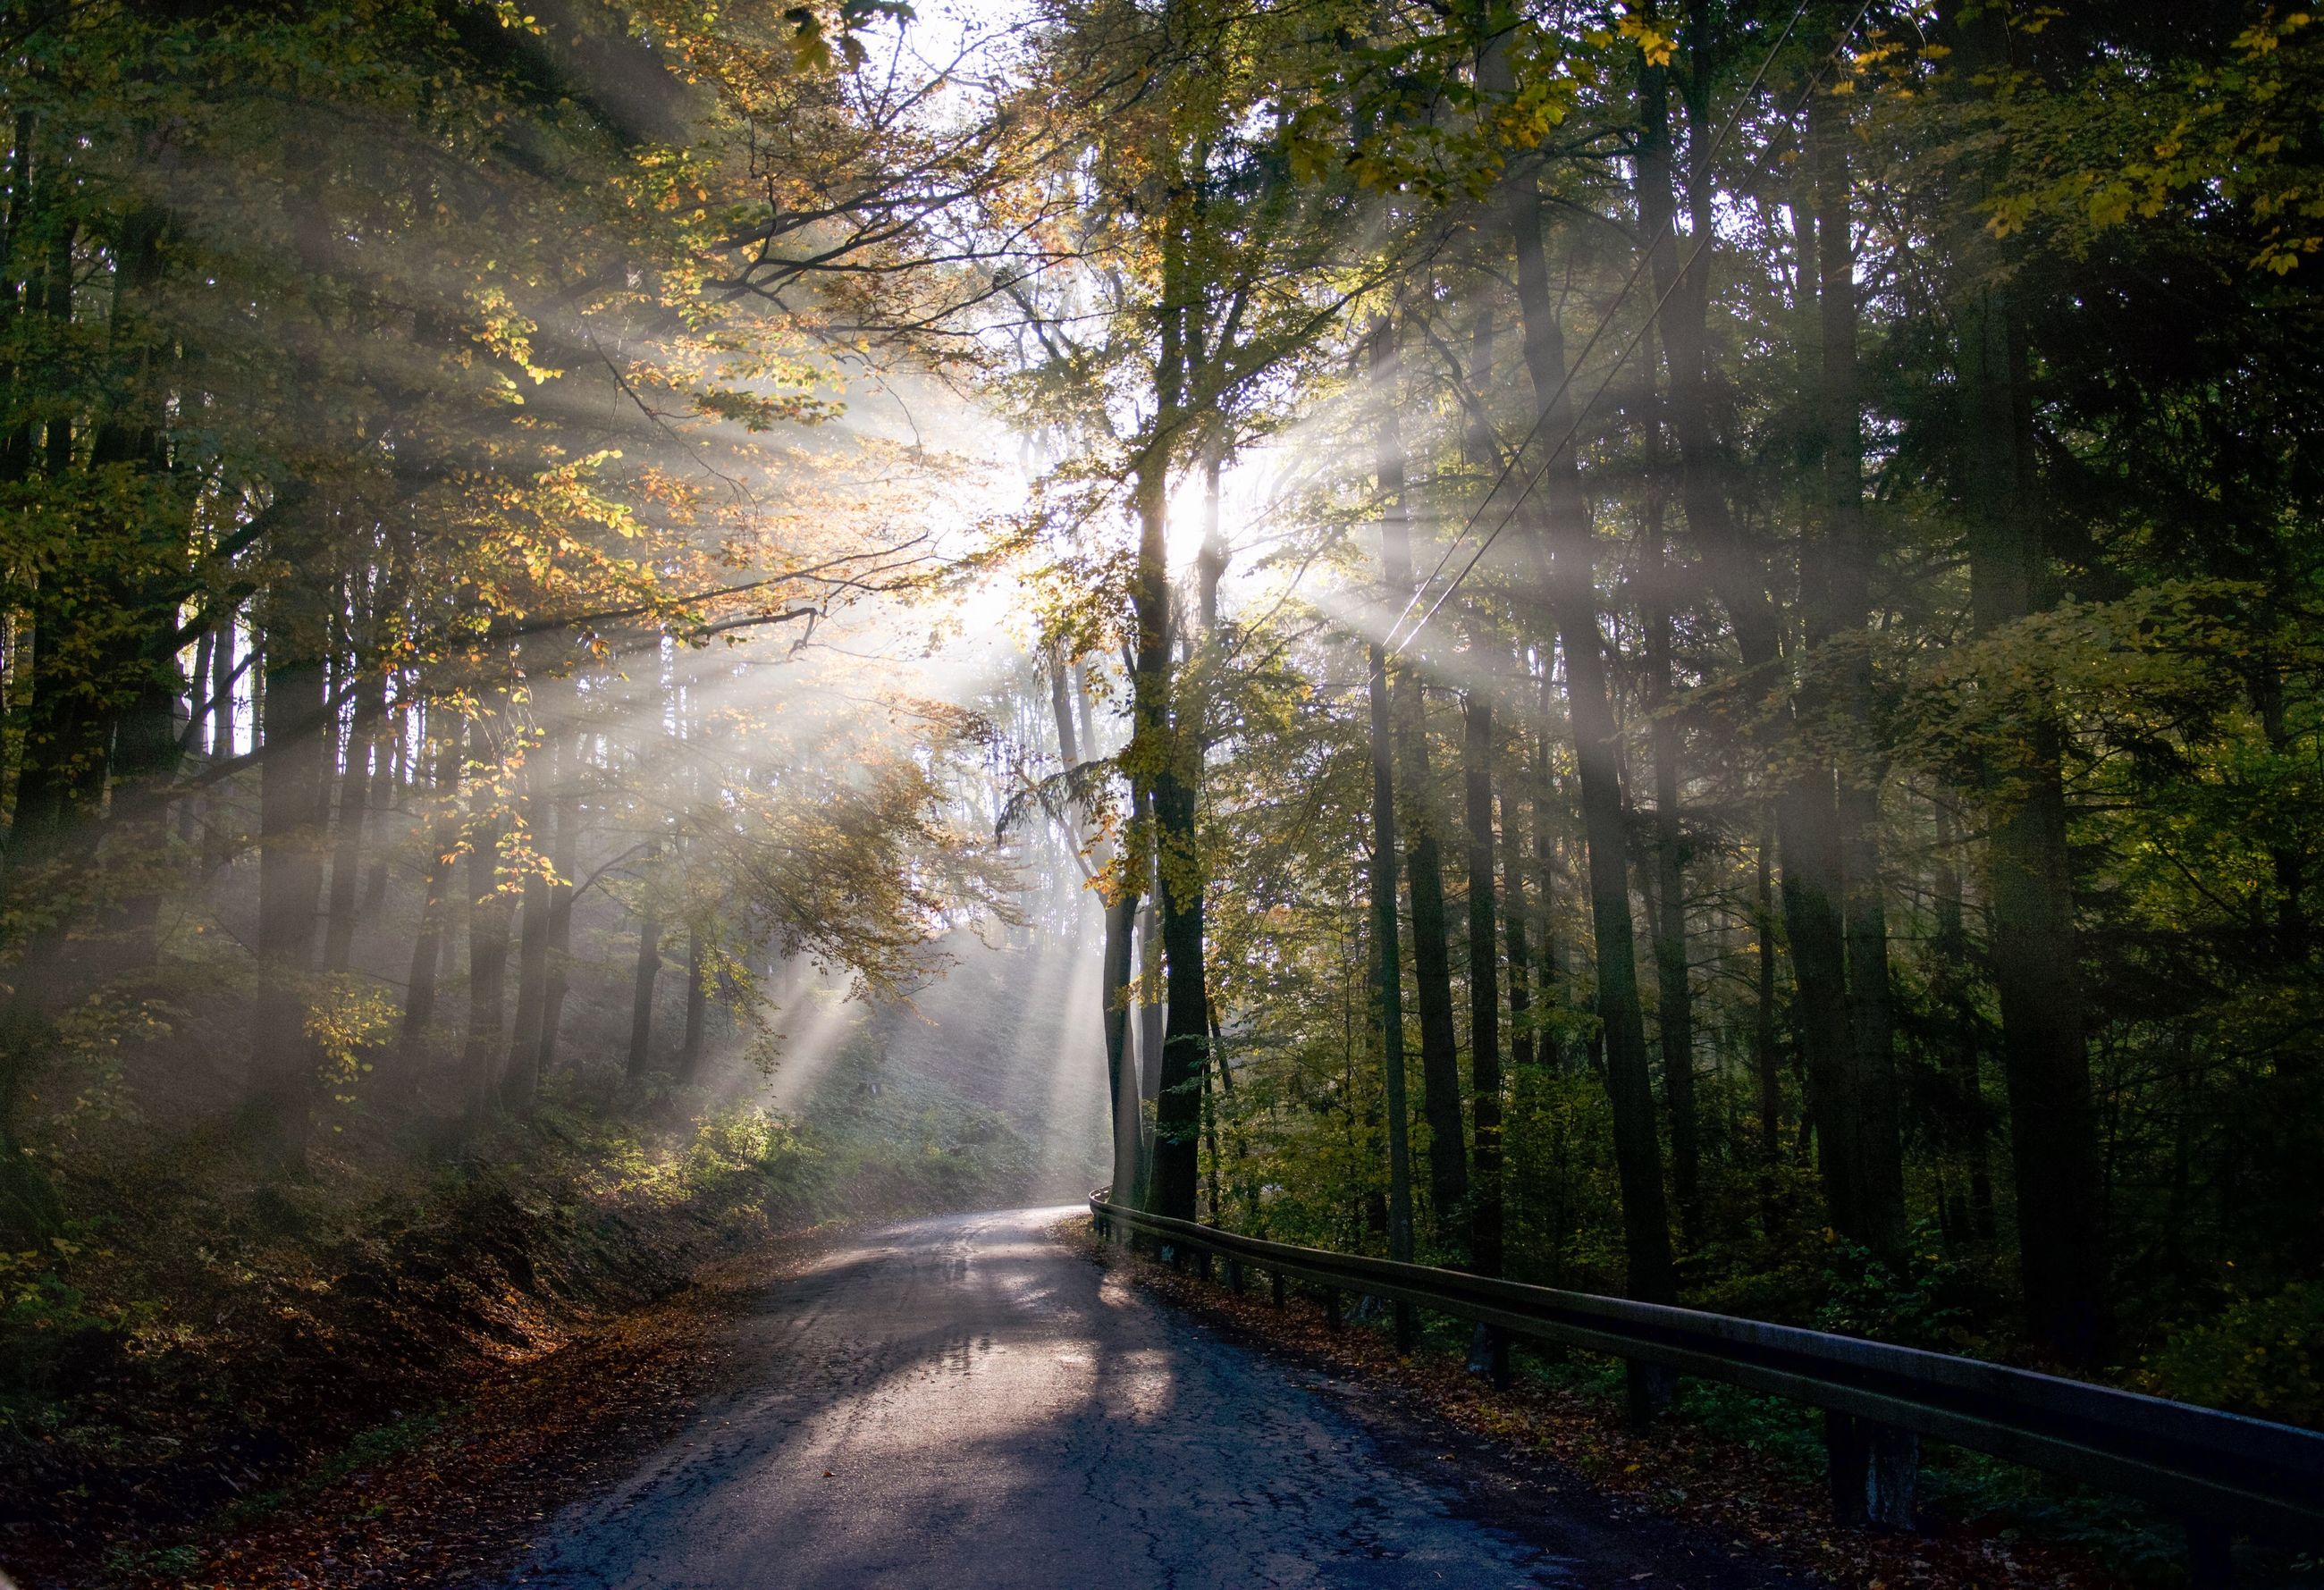 tree, forest, nature, sunbeam, road, day, sunlight, no people, scenics, outdoors, the way forward, fog, beauty in nature, mountain, sky